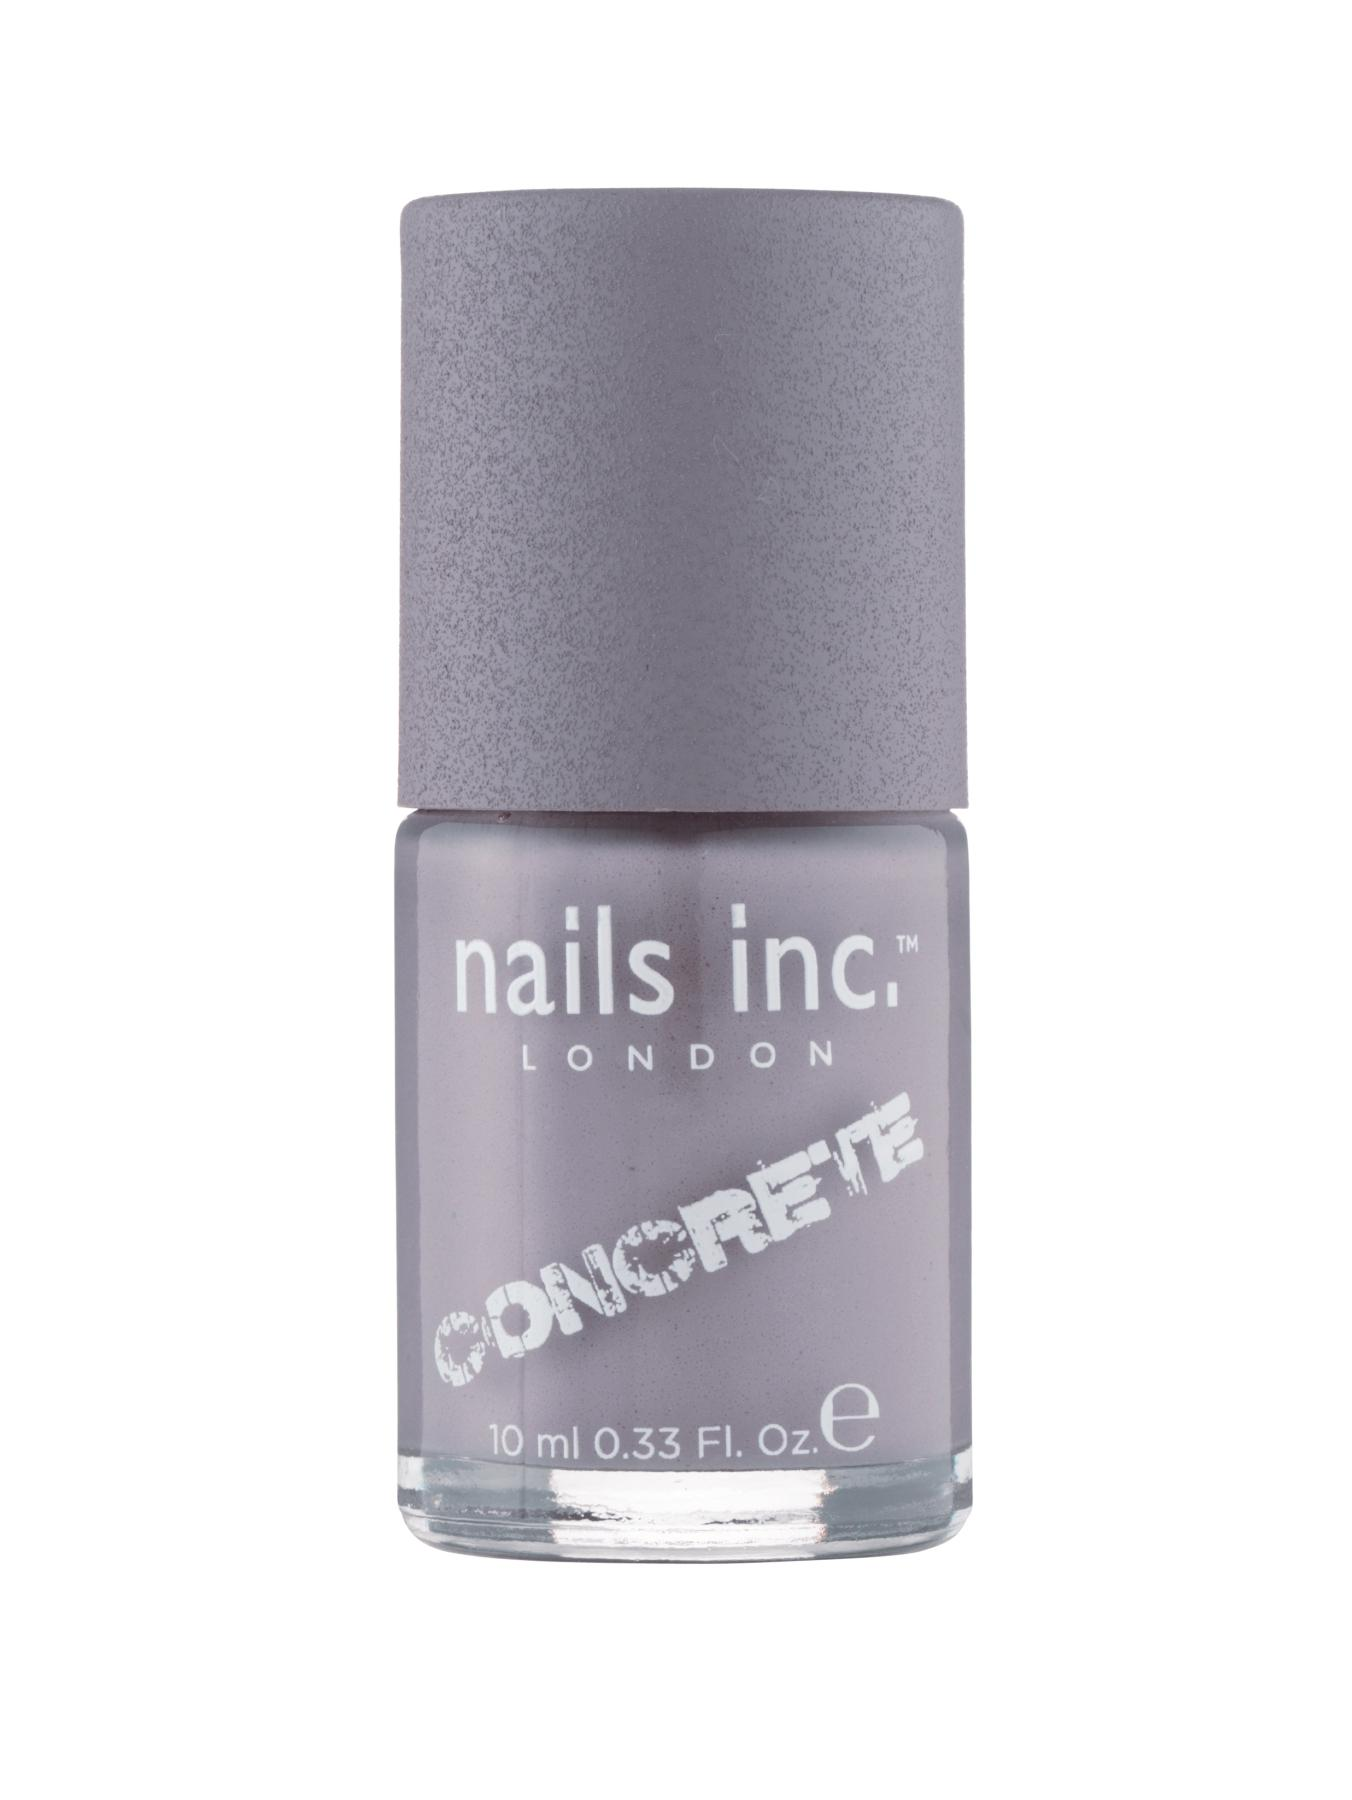 London Wall Concrete Nail Polish *Free Gift